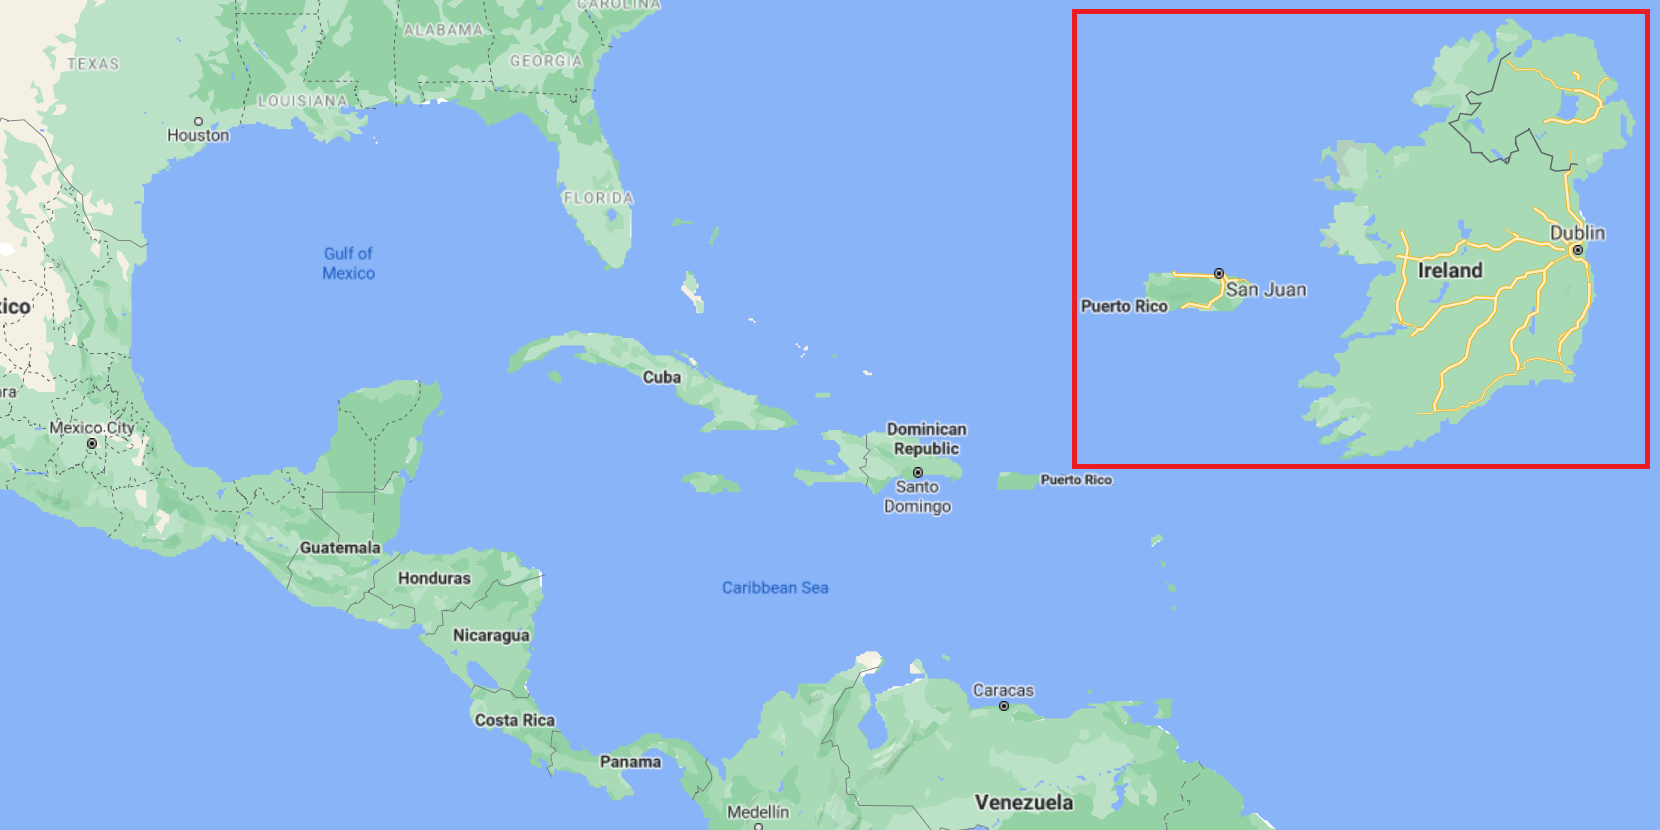 Puerto Rico: geographical location and comparison with Ireland